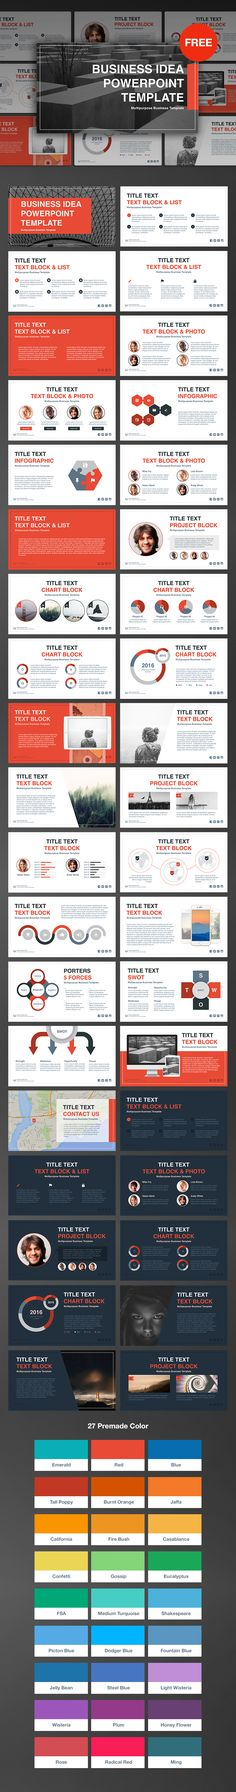 "FREE DOWNLOAD PowerPoint Template: http://site2max.pro/business-idea-free-powerpoint-template/ 31 slides, PPTX format, 16:9 HD, free support, 27 premade color, ""drag & drop"", light & dark versions.  #free #freebie #freebies #ppt #pptx #powerpoint #template #theme #site2max #design #red #emerald #hd #business #idea #marketing"